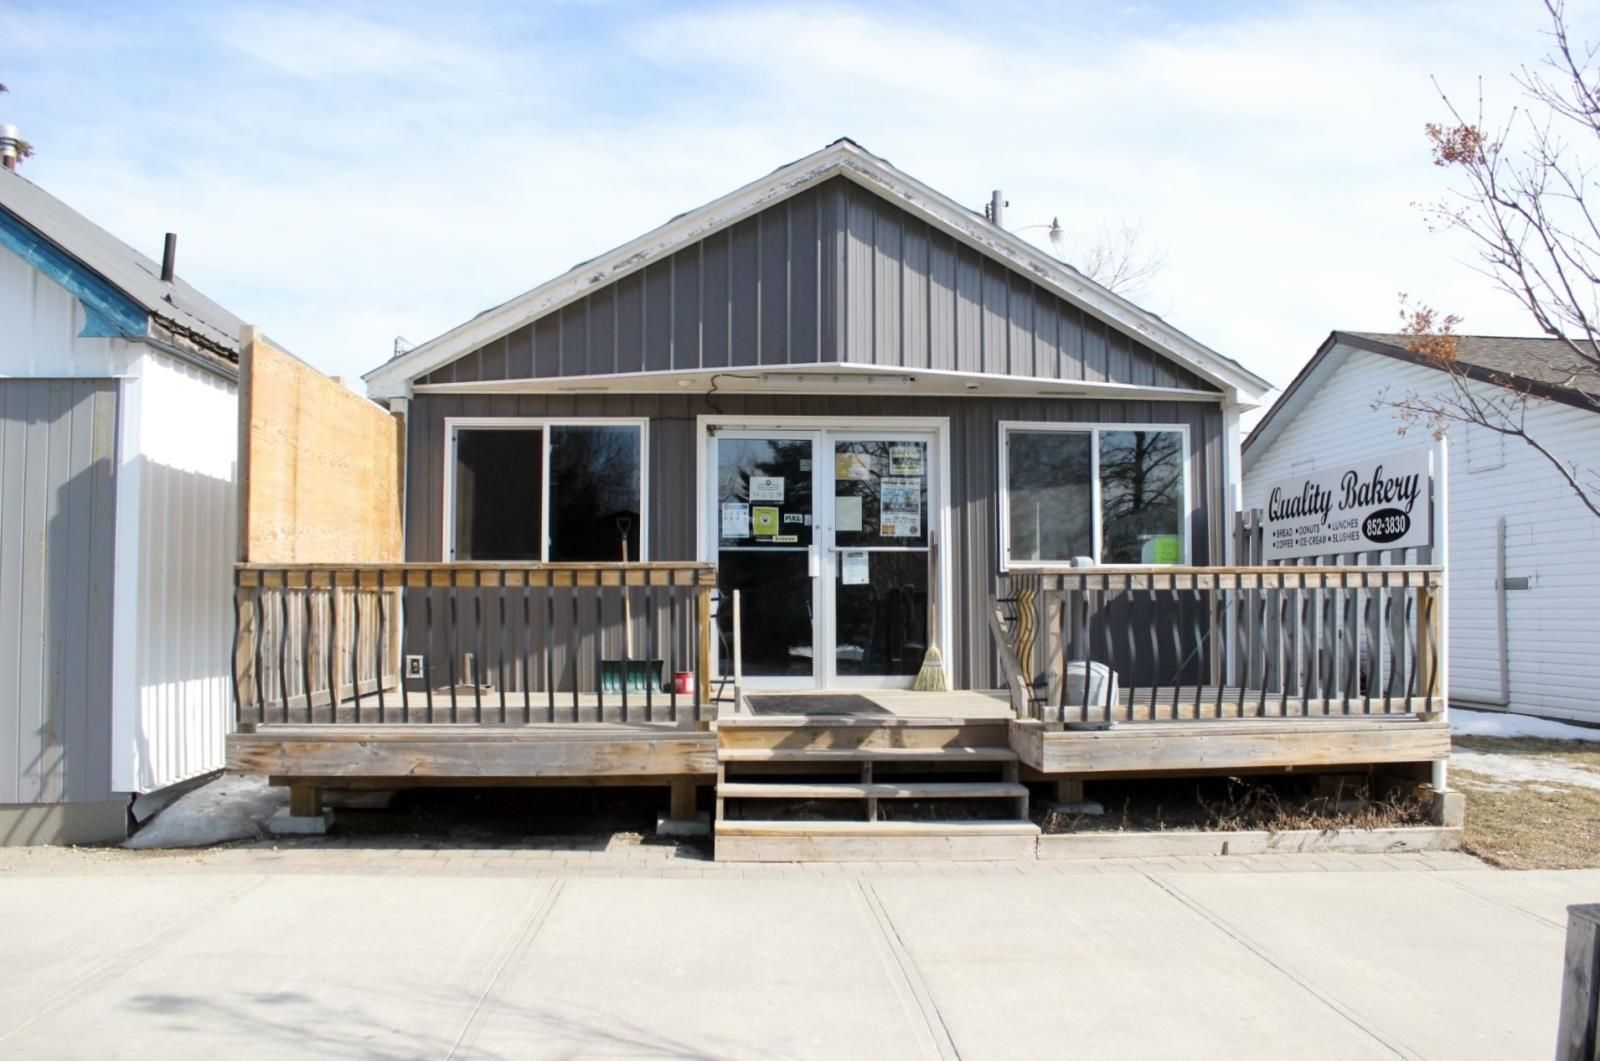 Main Photo: 214 FOURTH ST in RAINY RIVER: Multi-family for sale : MLS®# TB210604